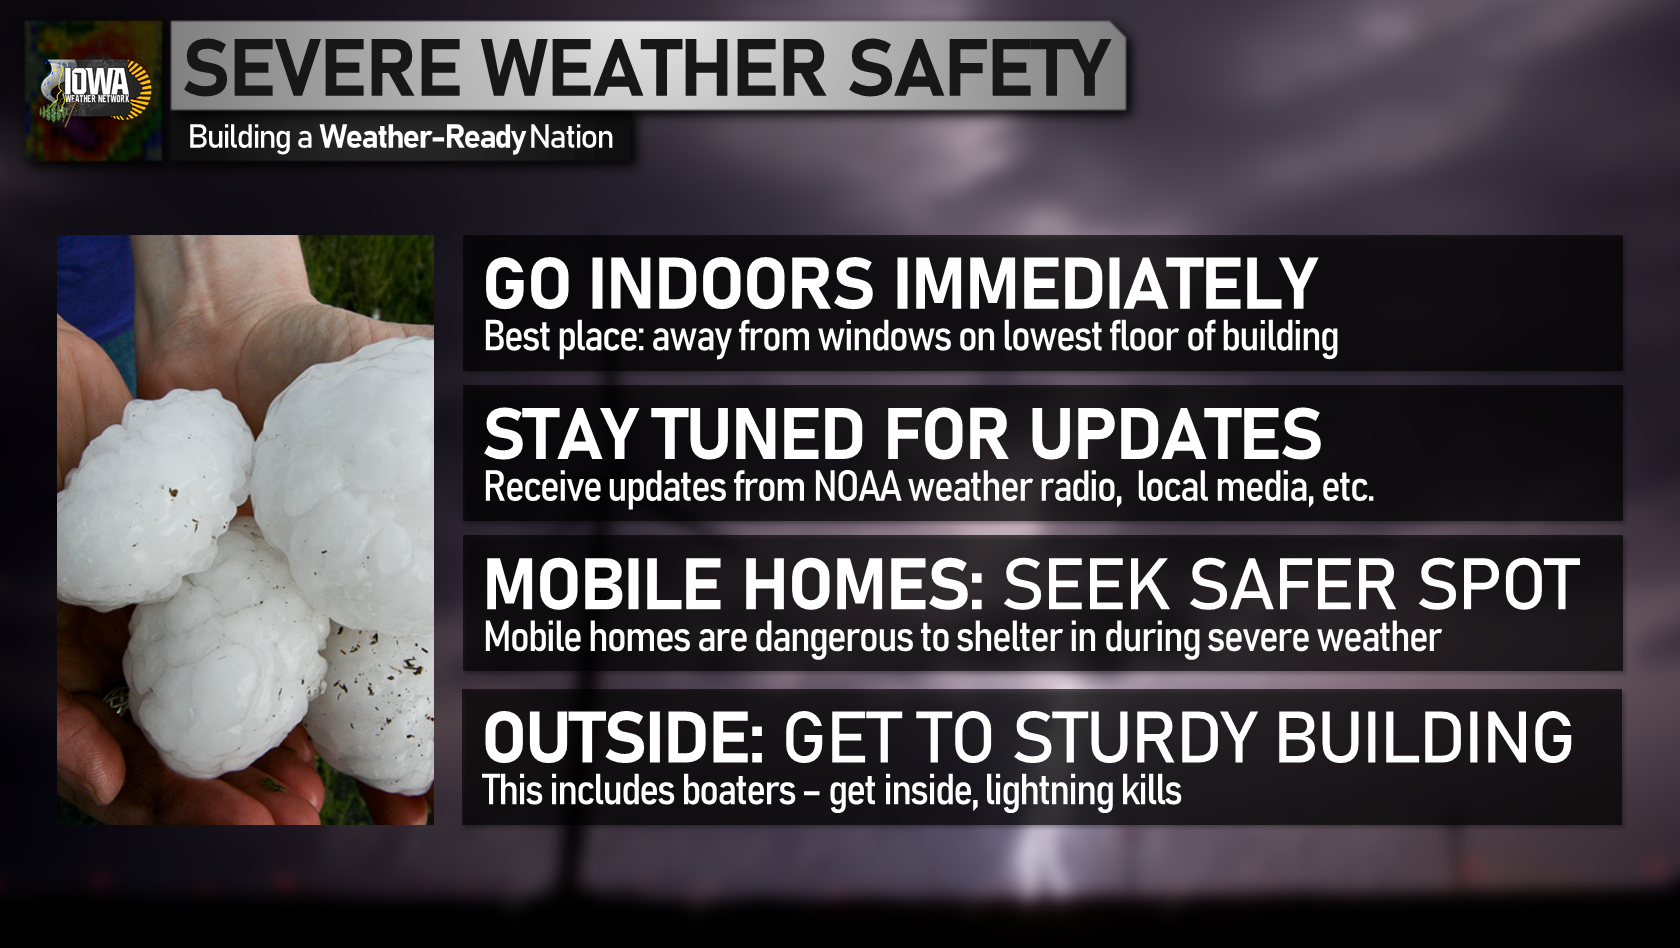 Severe weather safety tips